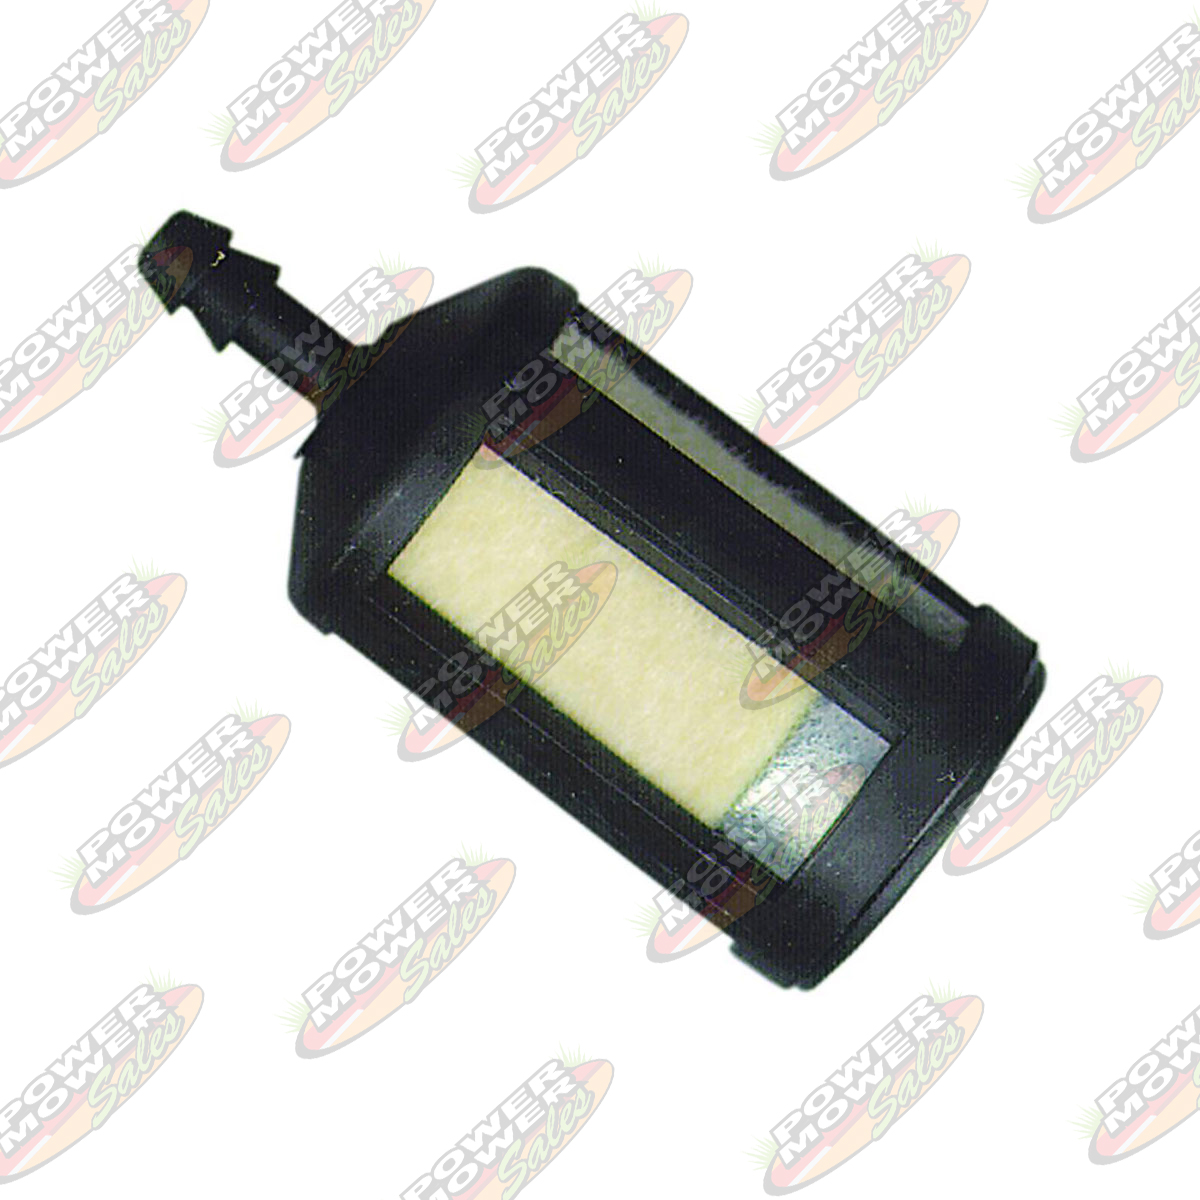 fuel filter / zama zf-3 | power mower sales quick view